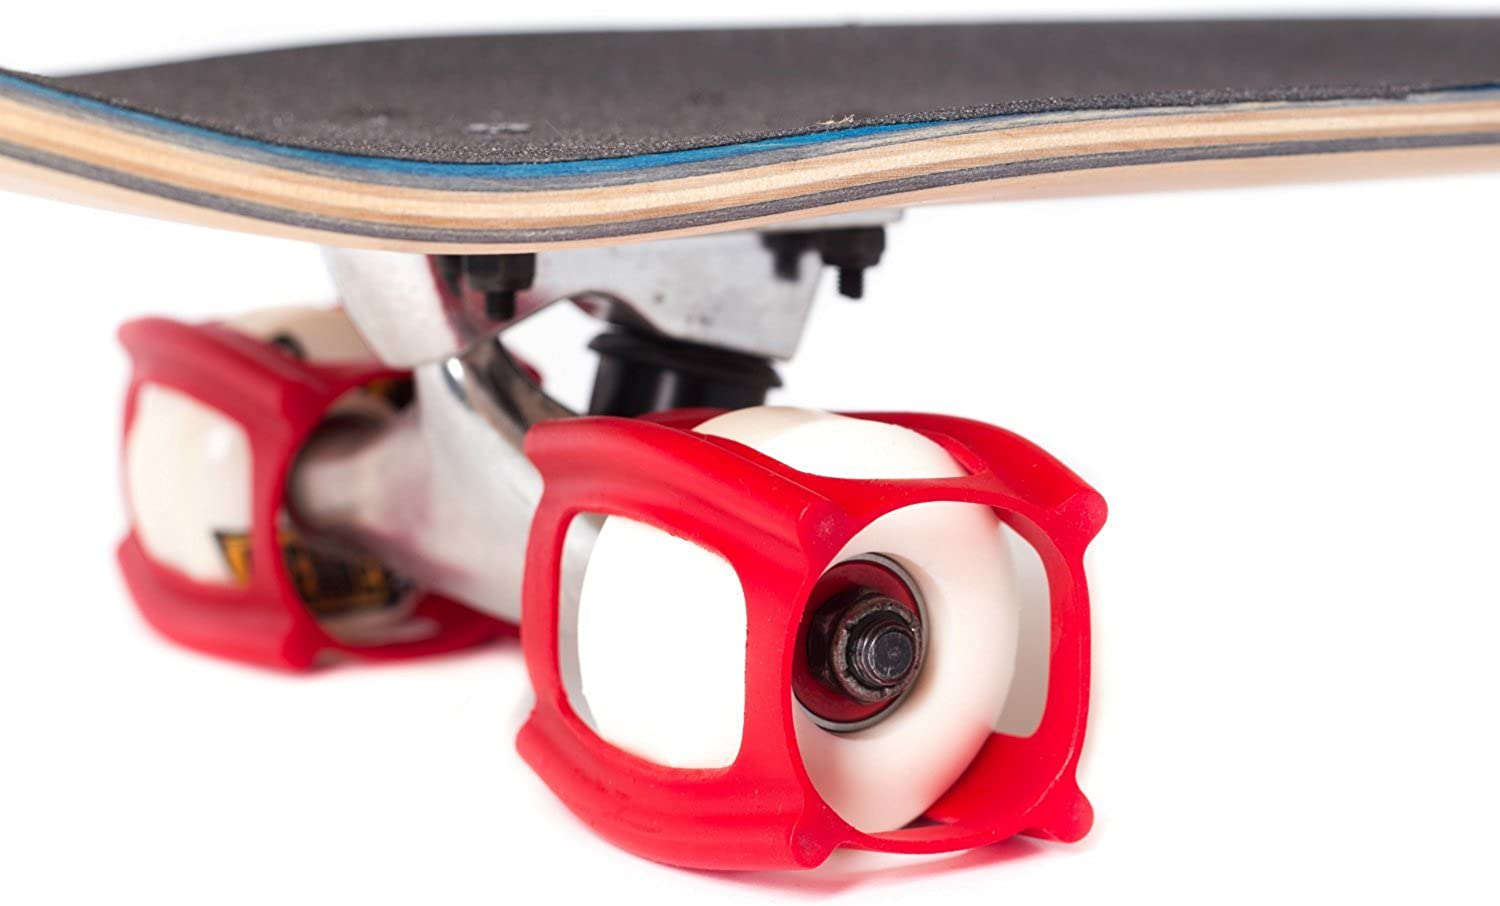 SKATERTRAINER 2.0, The Rubber Skateboarding Accessory for Perfecting Your Ollie and Kickflip - Learn, Practice and Land Tricks in No Time!